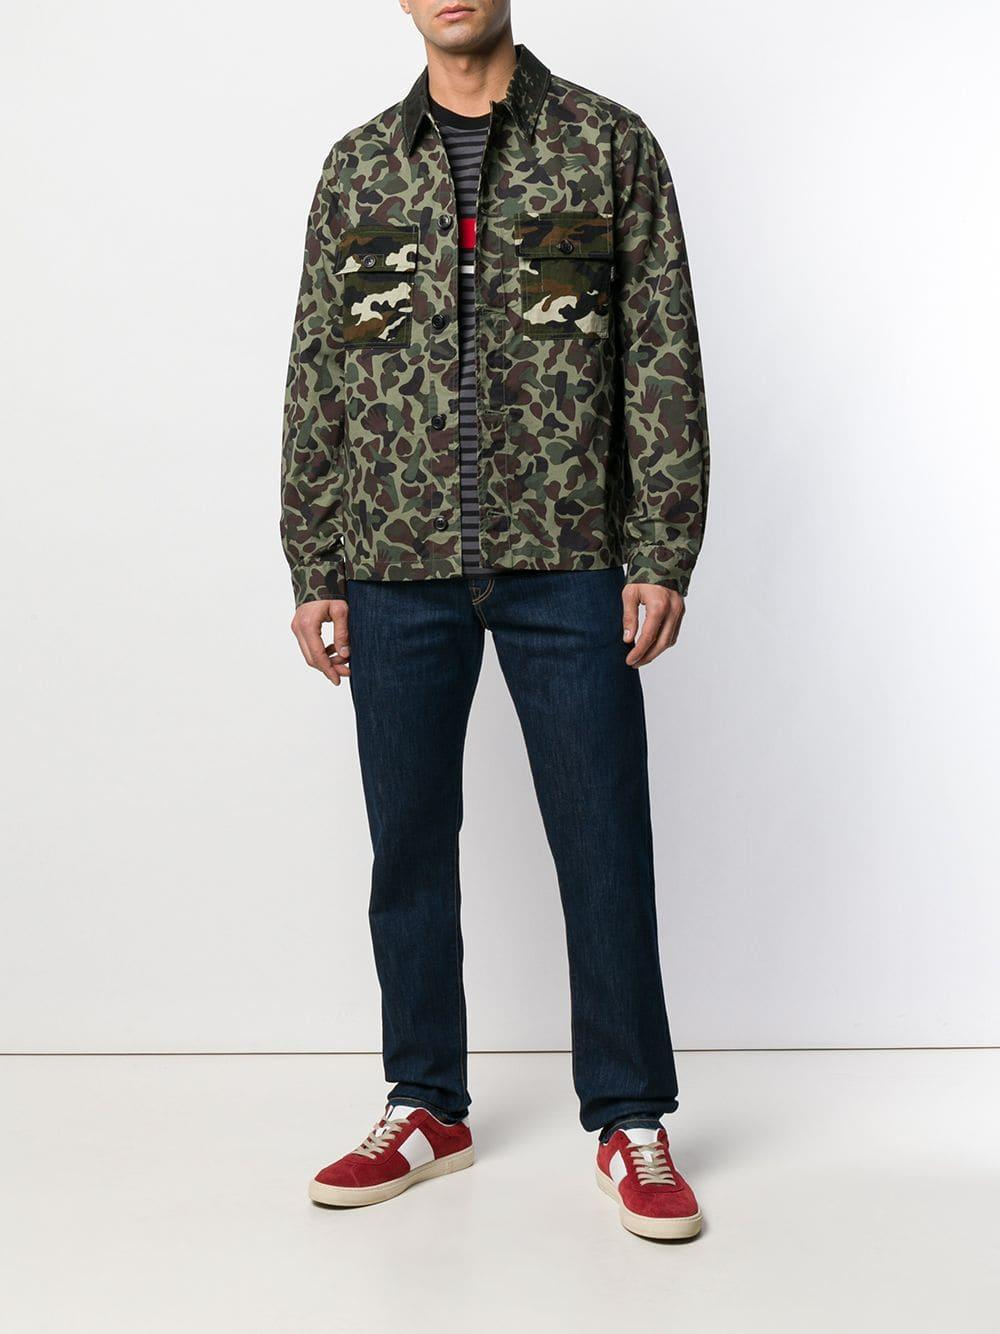 PS by Paul Smith Katoen Button Down Overhemd Met Print in het Groen voor heren